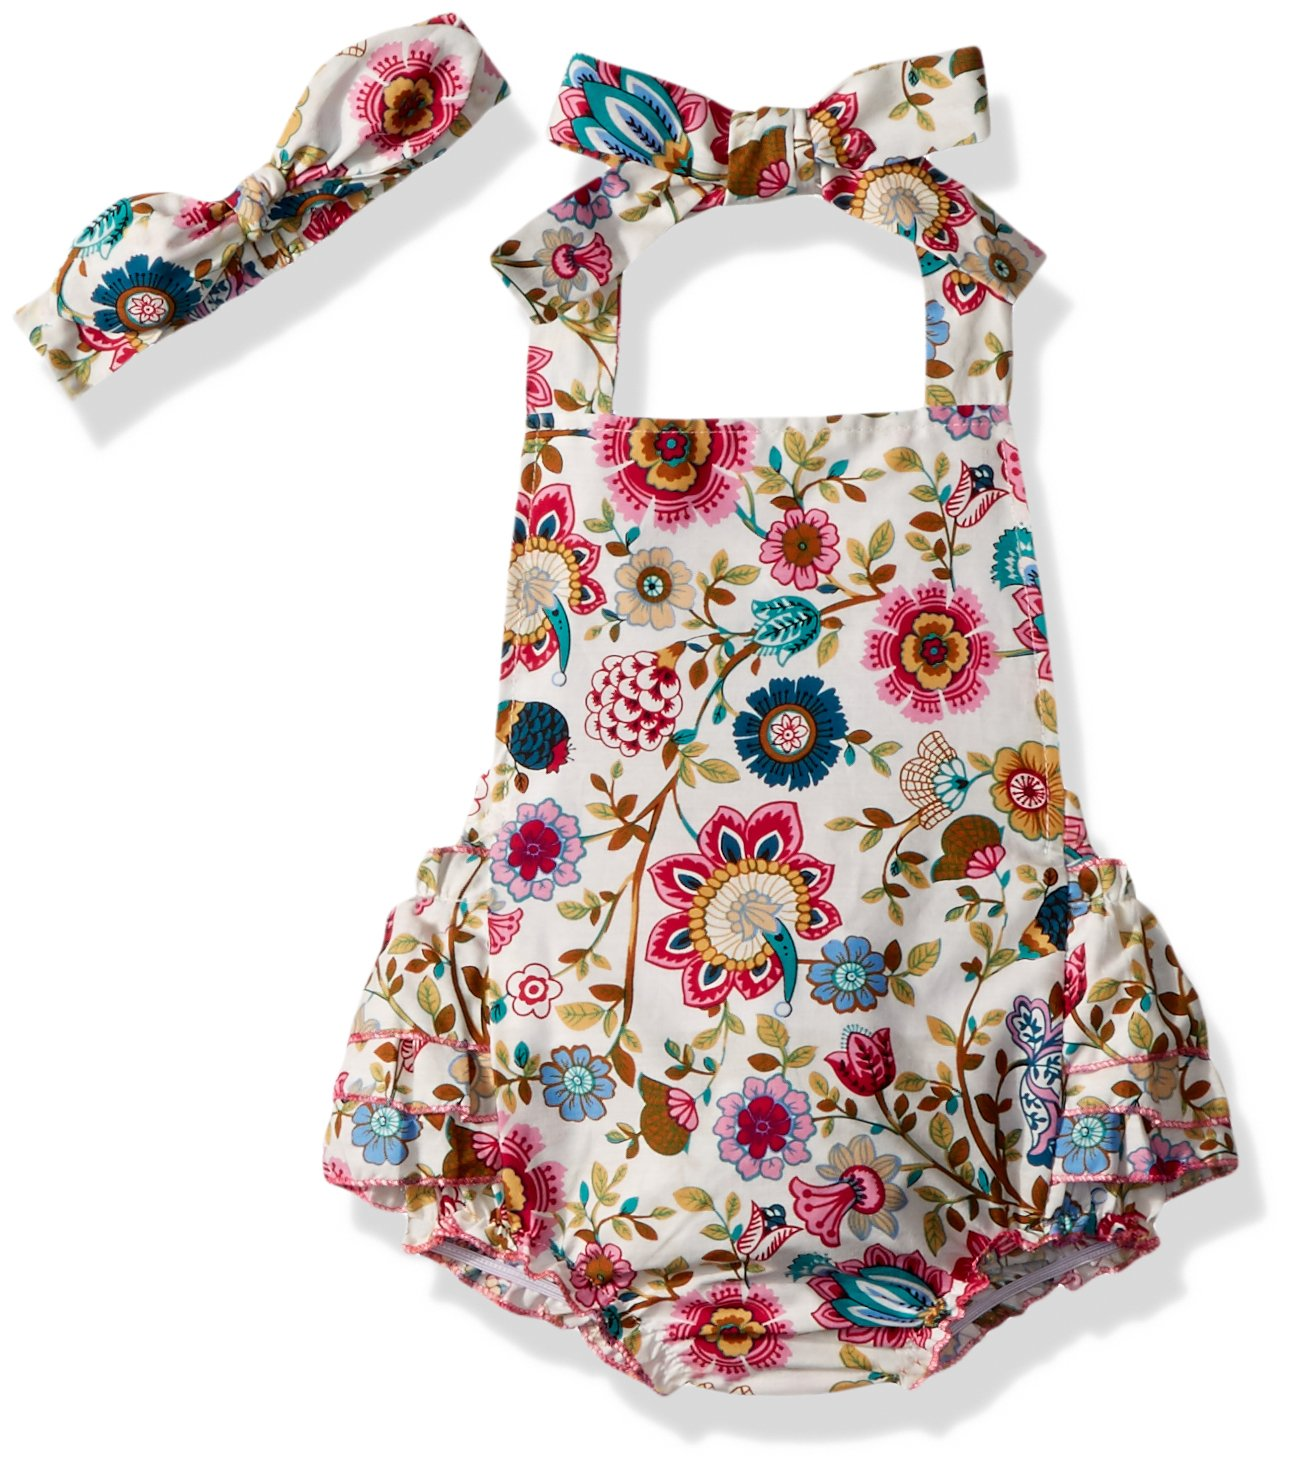 Slowera Baby Girls 2pcs Sets Cotton Ruffles Romper Outfits Clothes L24months White